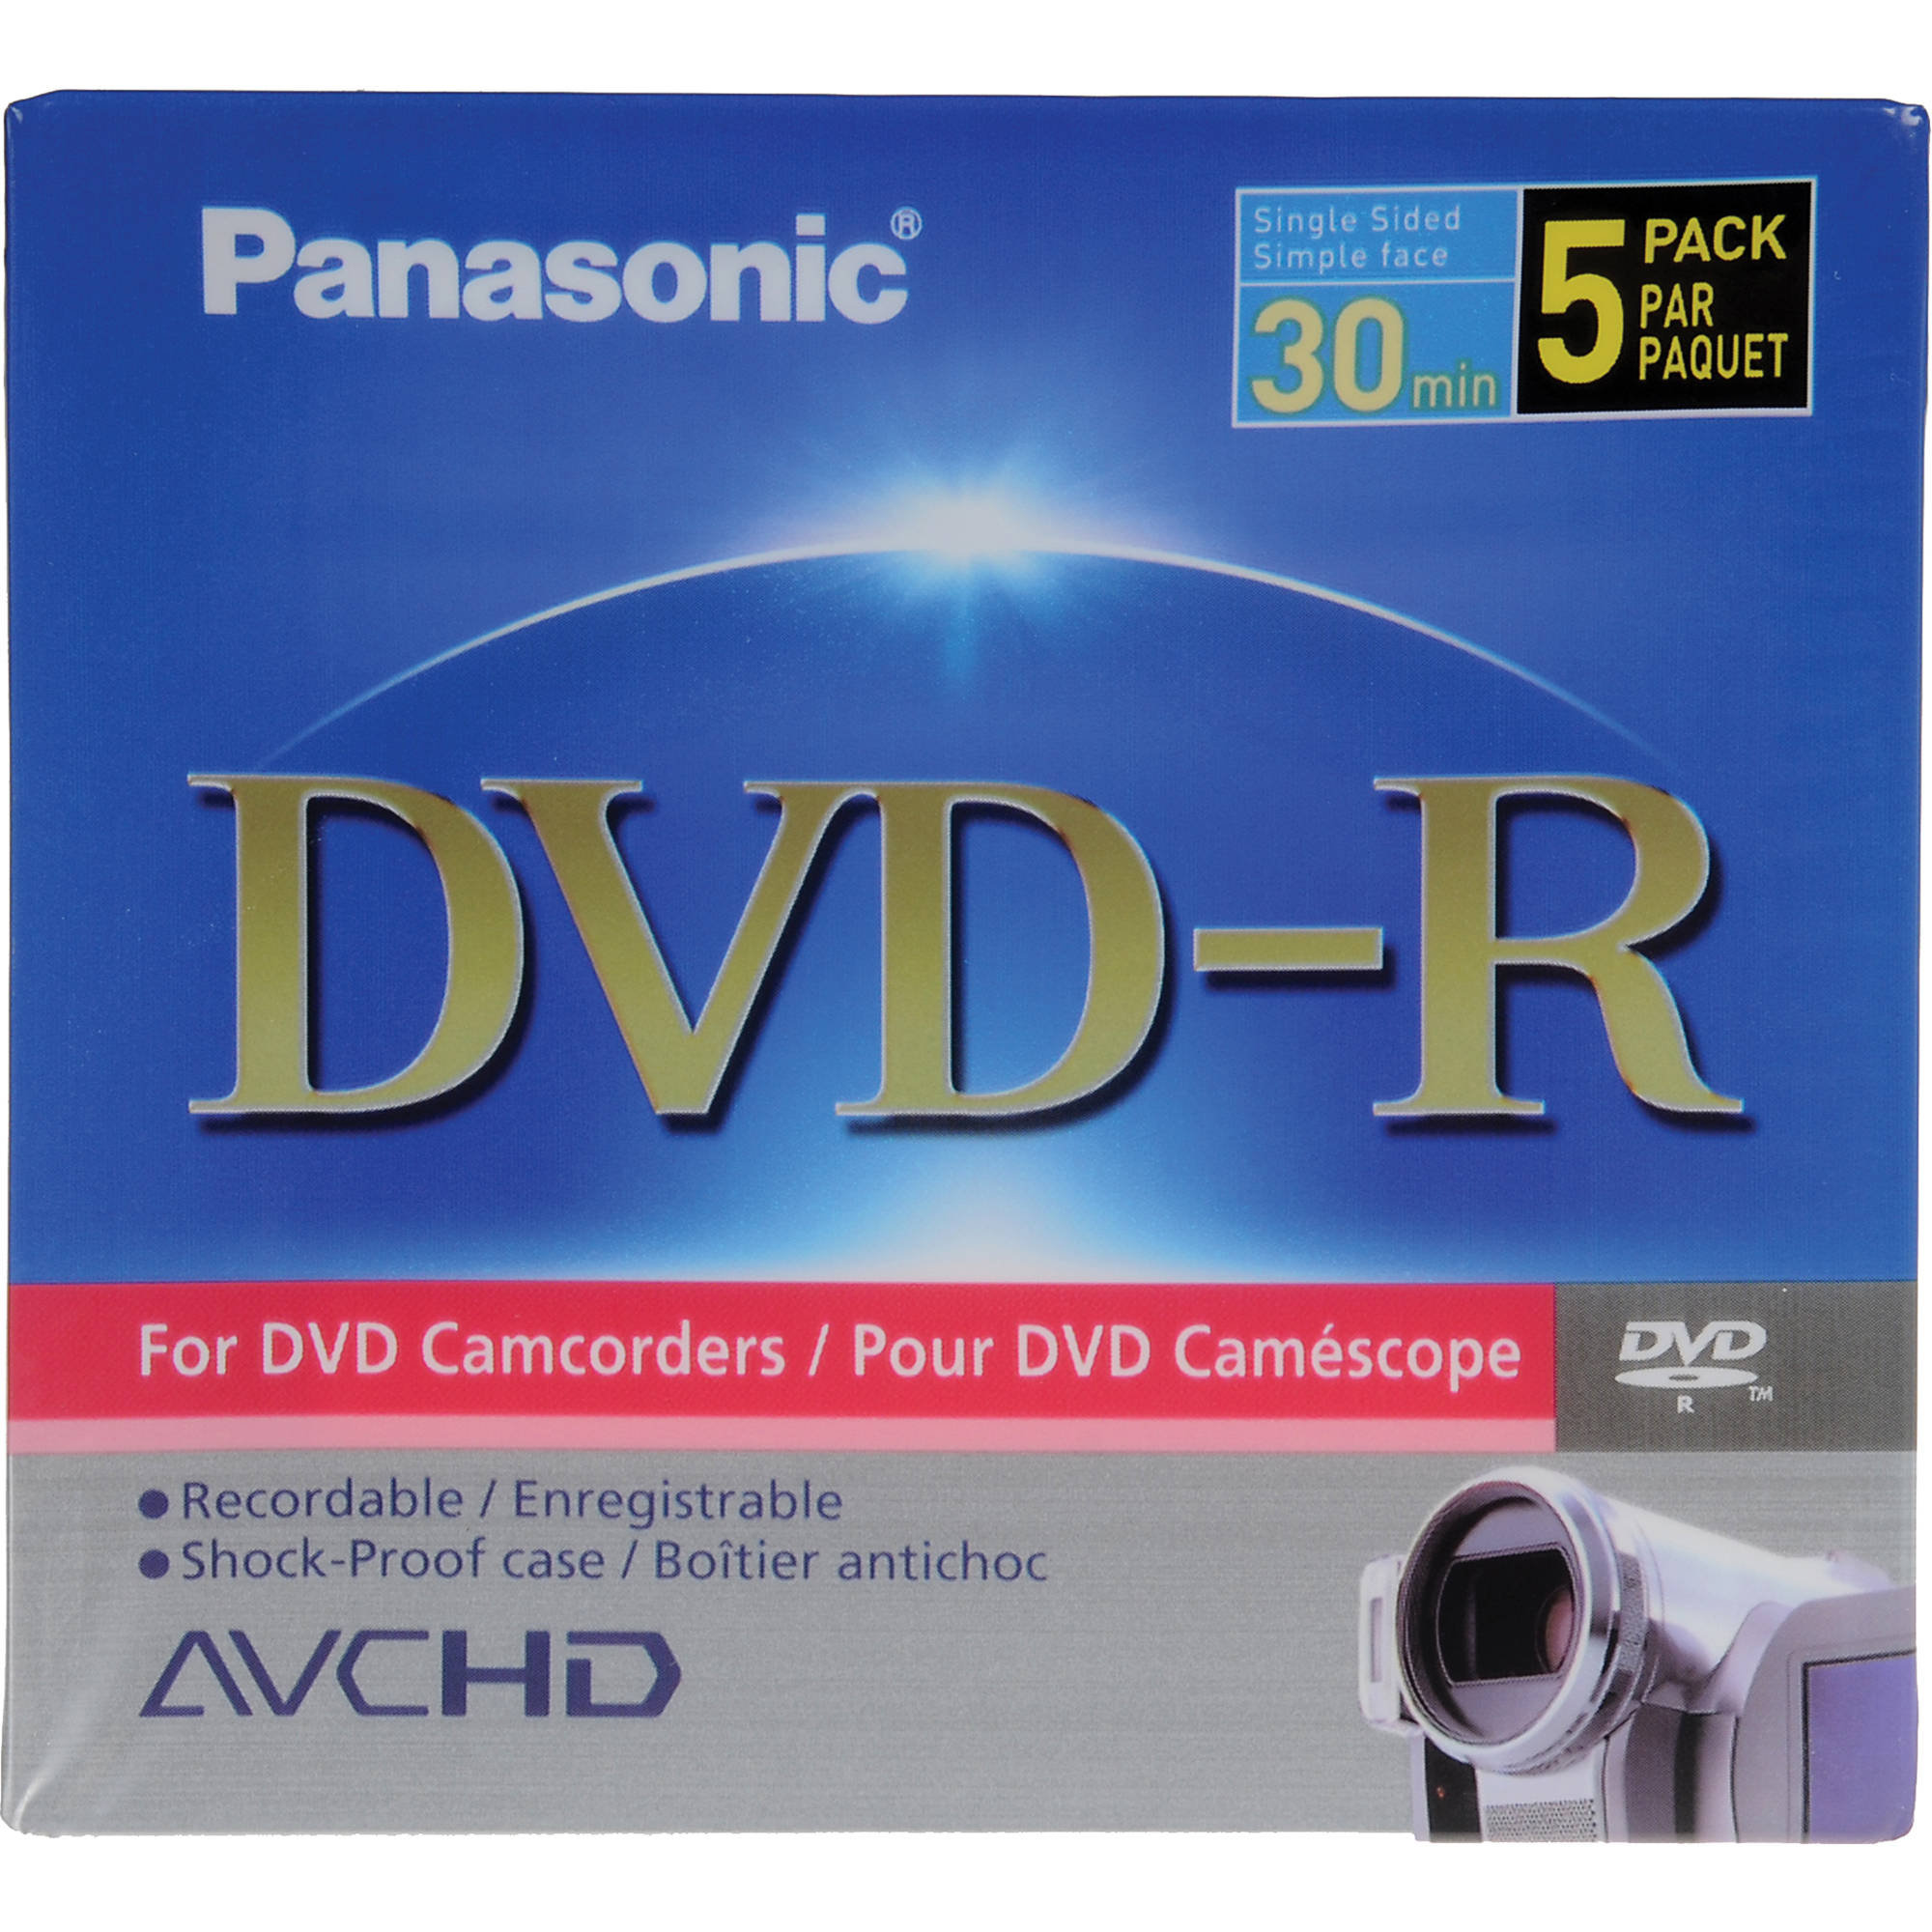 Panasonic 5-Pack Single-Sided 1 4GB 8cm DVD-R for DVD Camcorders